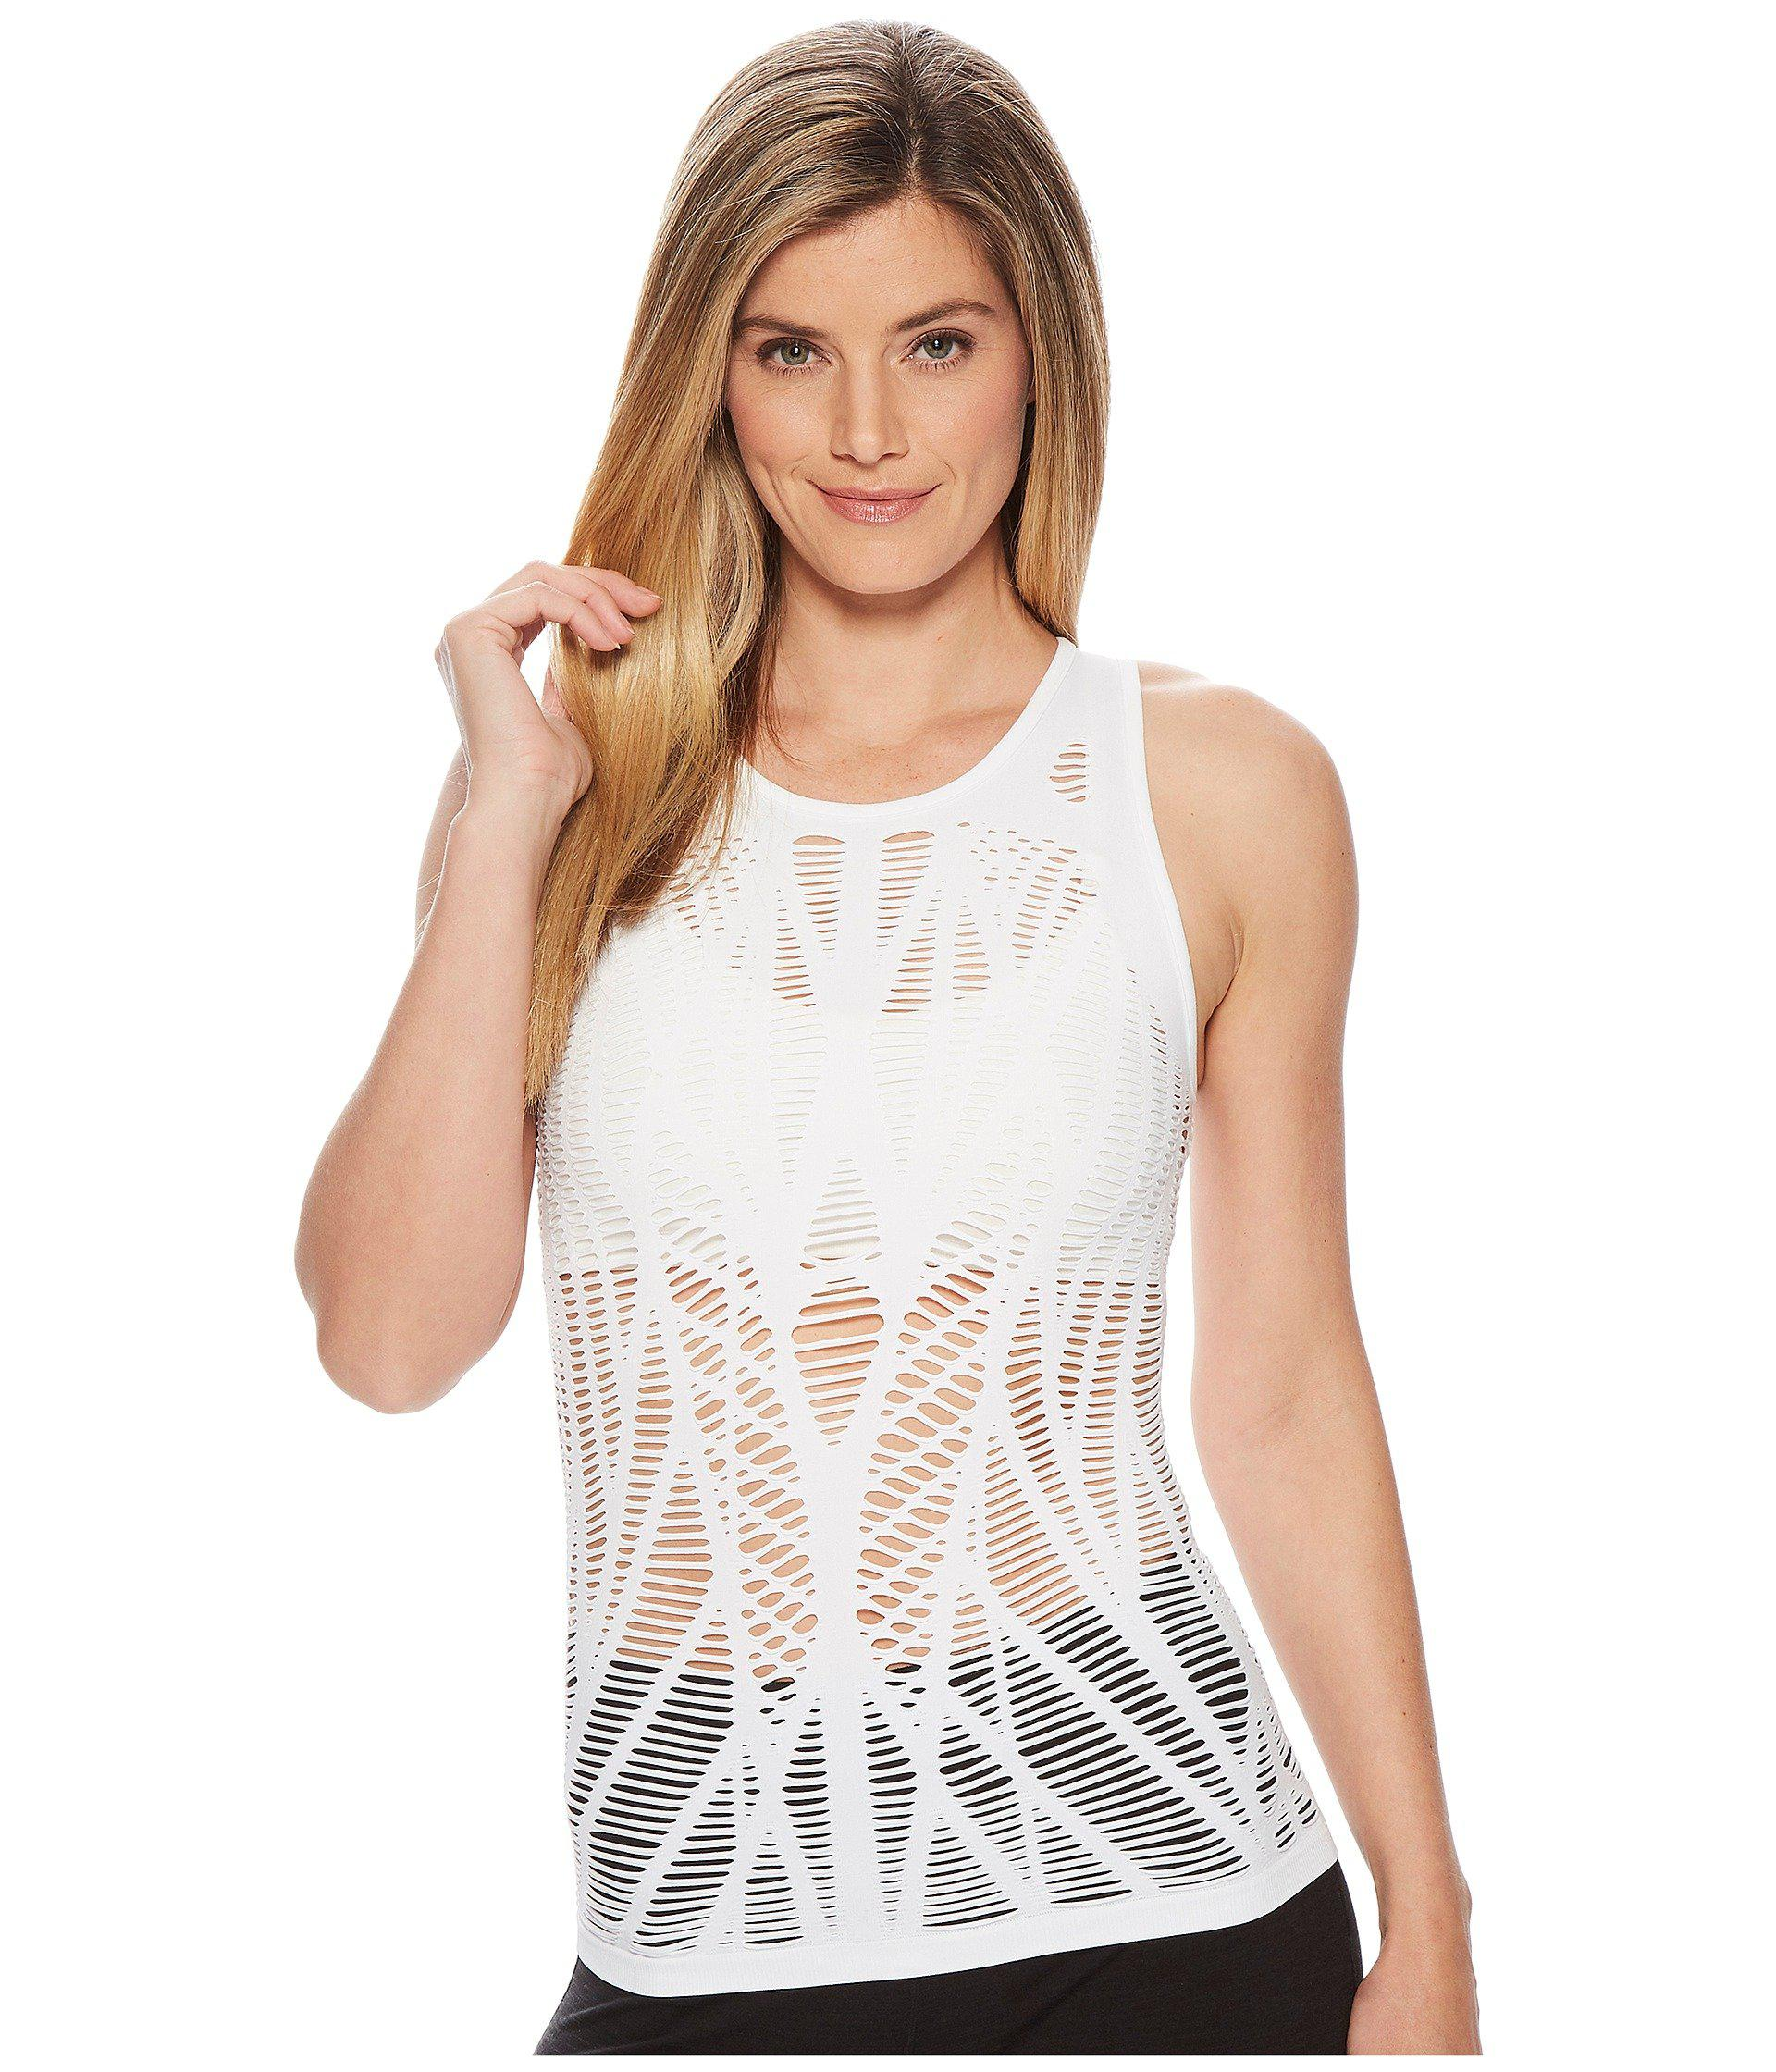 e4fbd12ae67 Lyst - Alo Yoga Vixen Fitted Muscle Tank in White - Save 35%